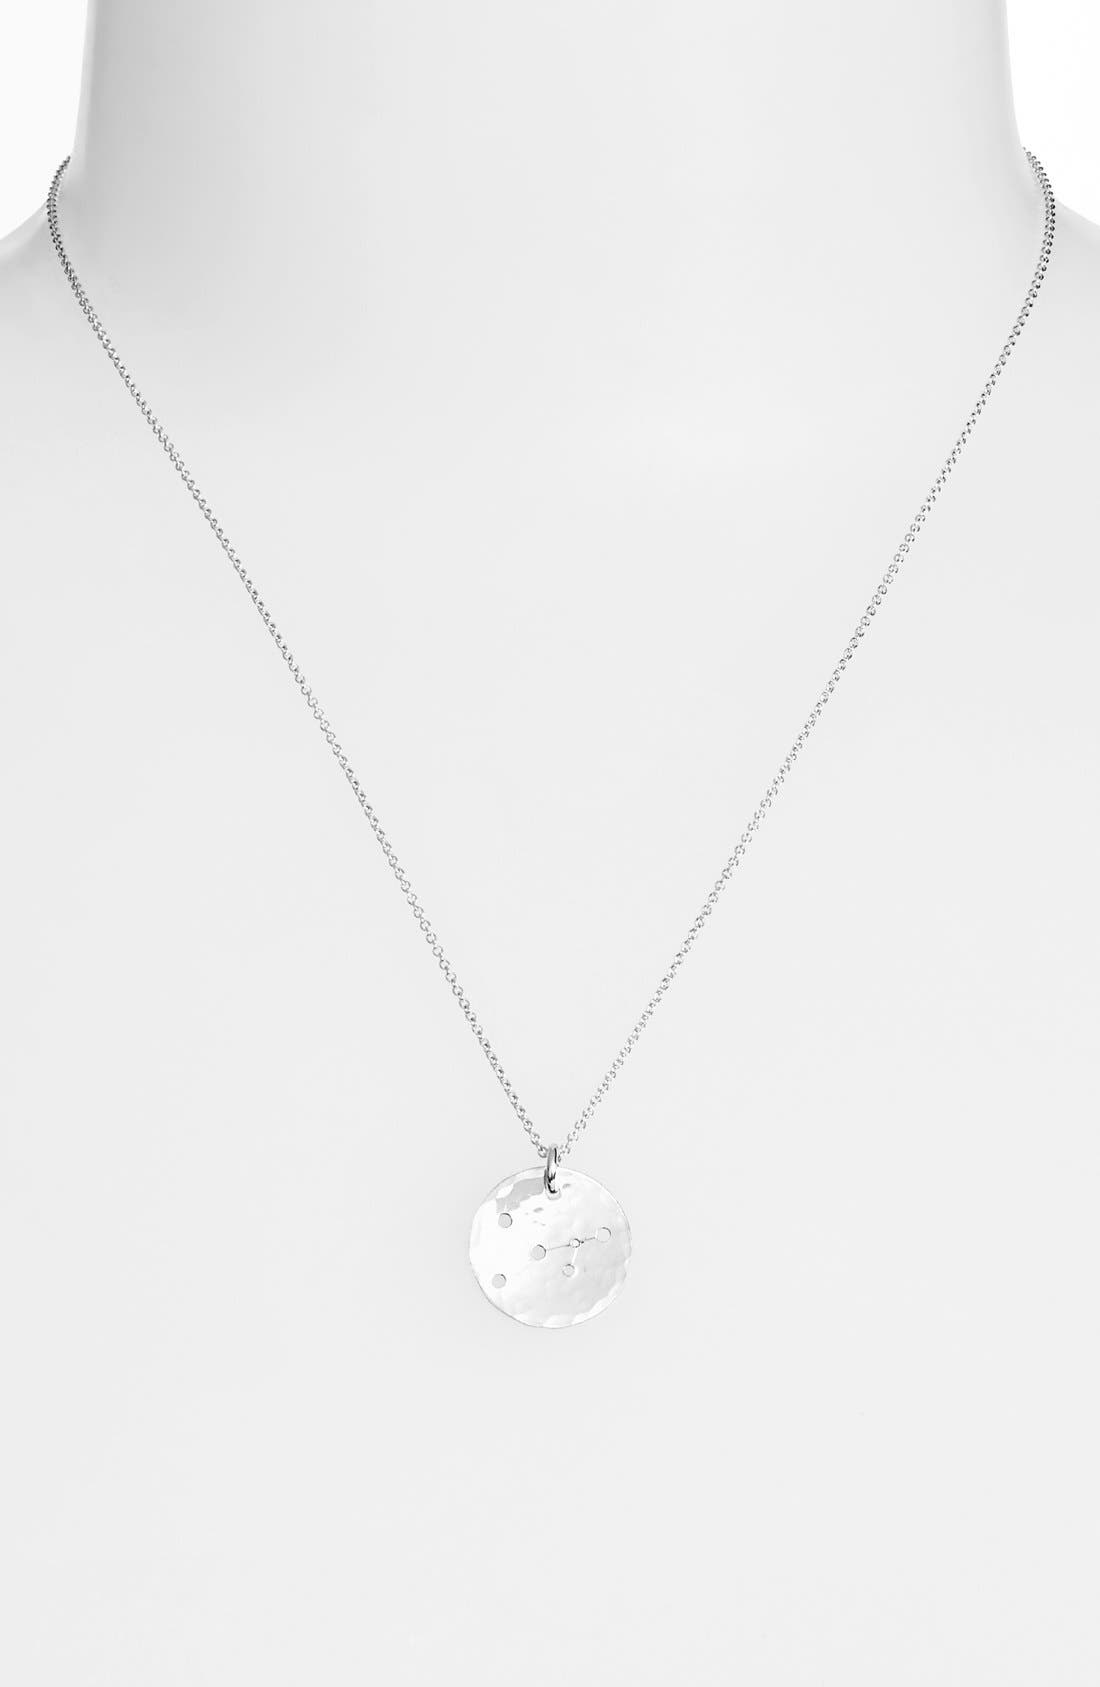 Ija 'Small Zodiac' Sterling Silver Necklace,                             Main thumbnail 1, color,                             Sterling Silver Cancer